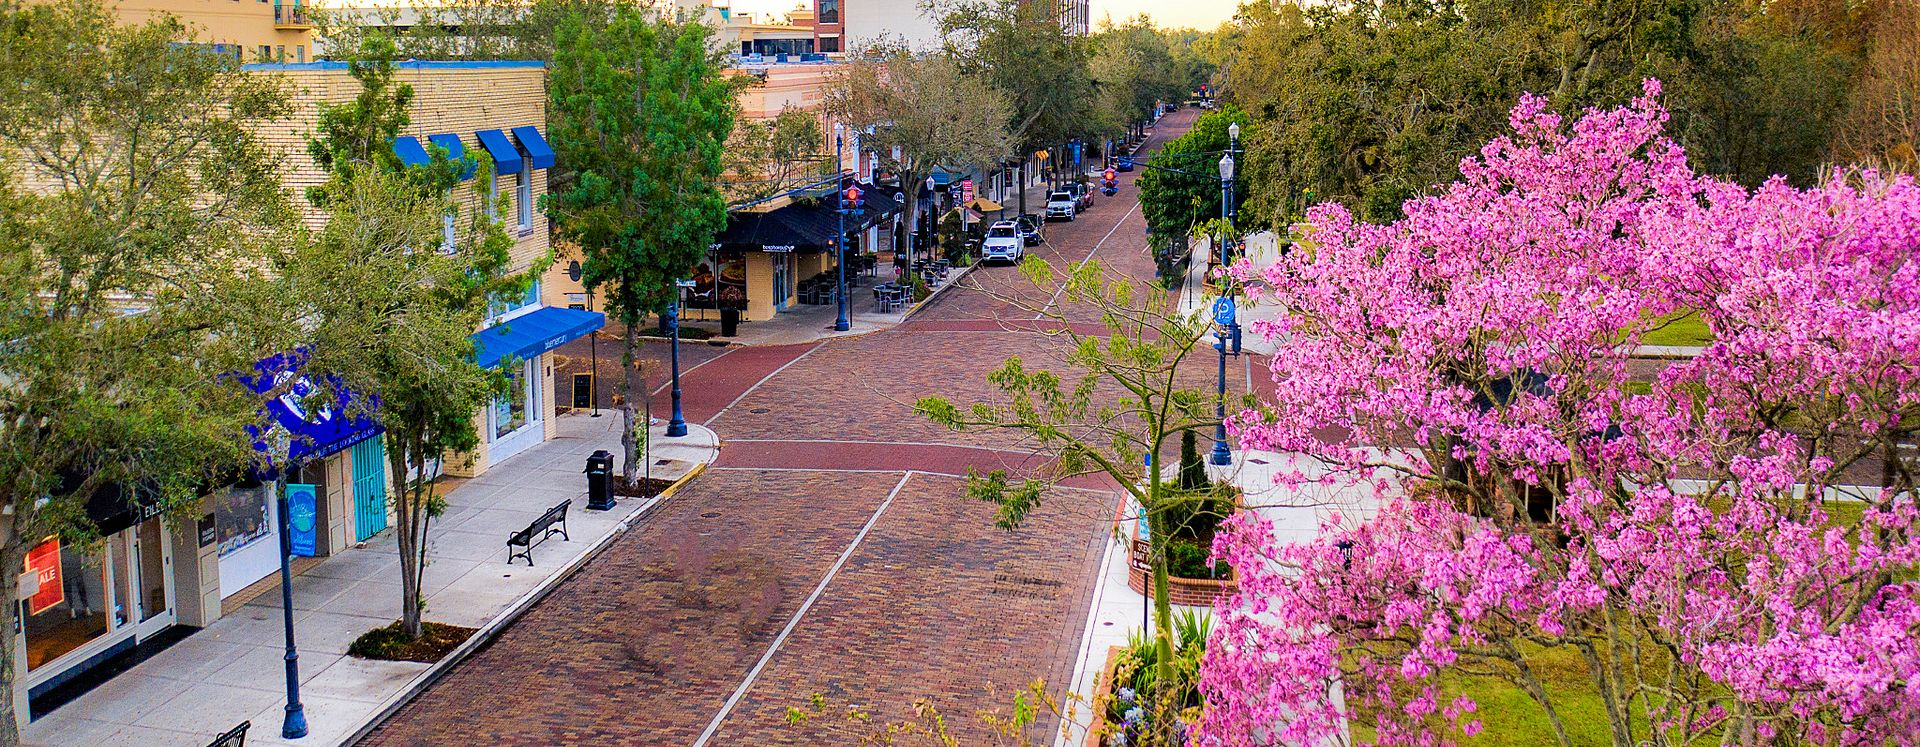 An aerial view of the brick paved streets of Winter Park